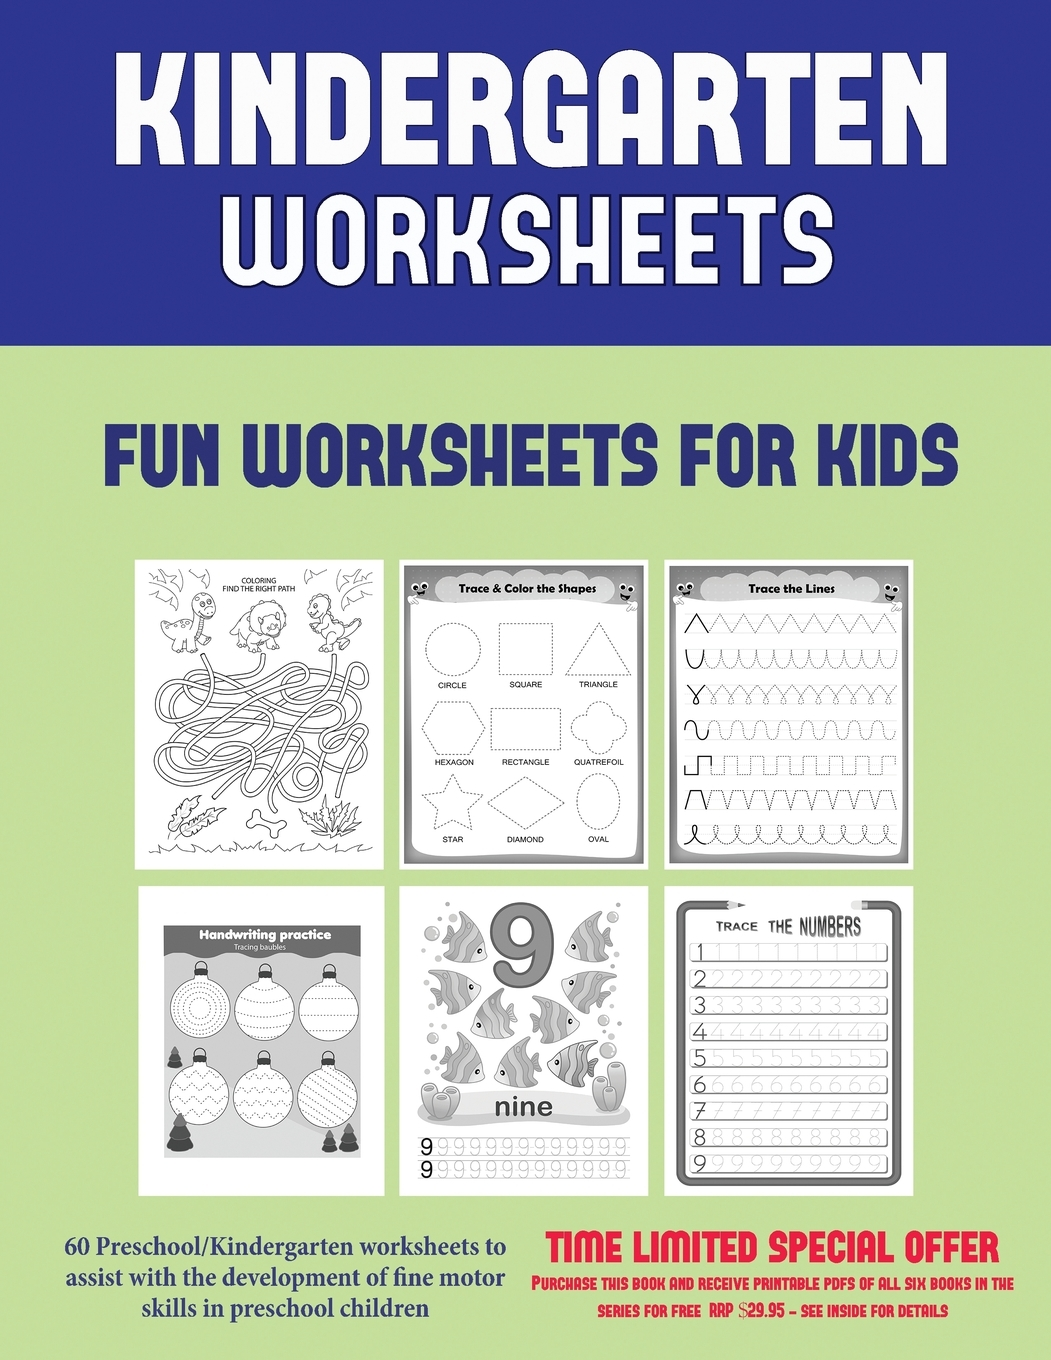 Kindergarten Worksheets Kindergarten Worksheets 60